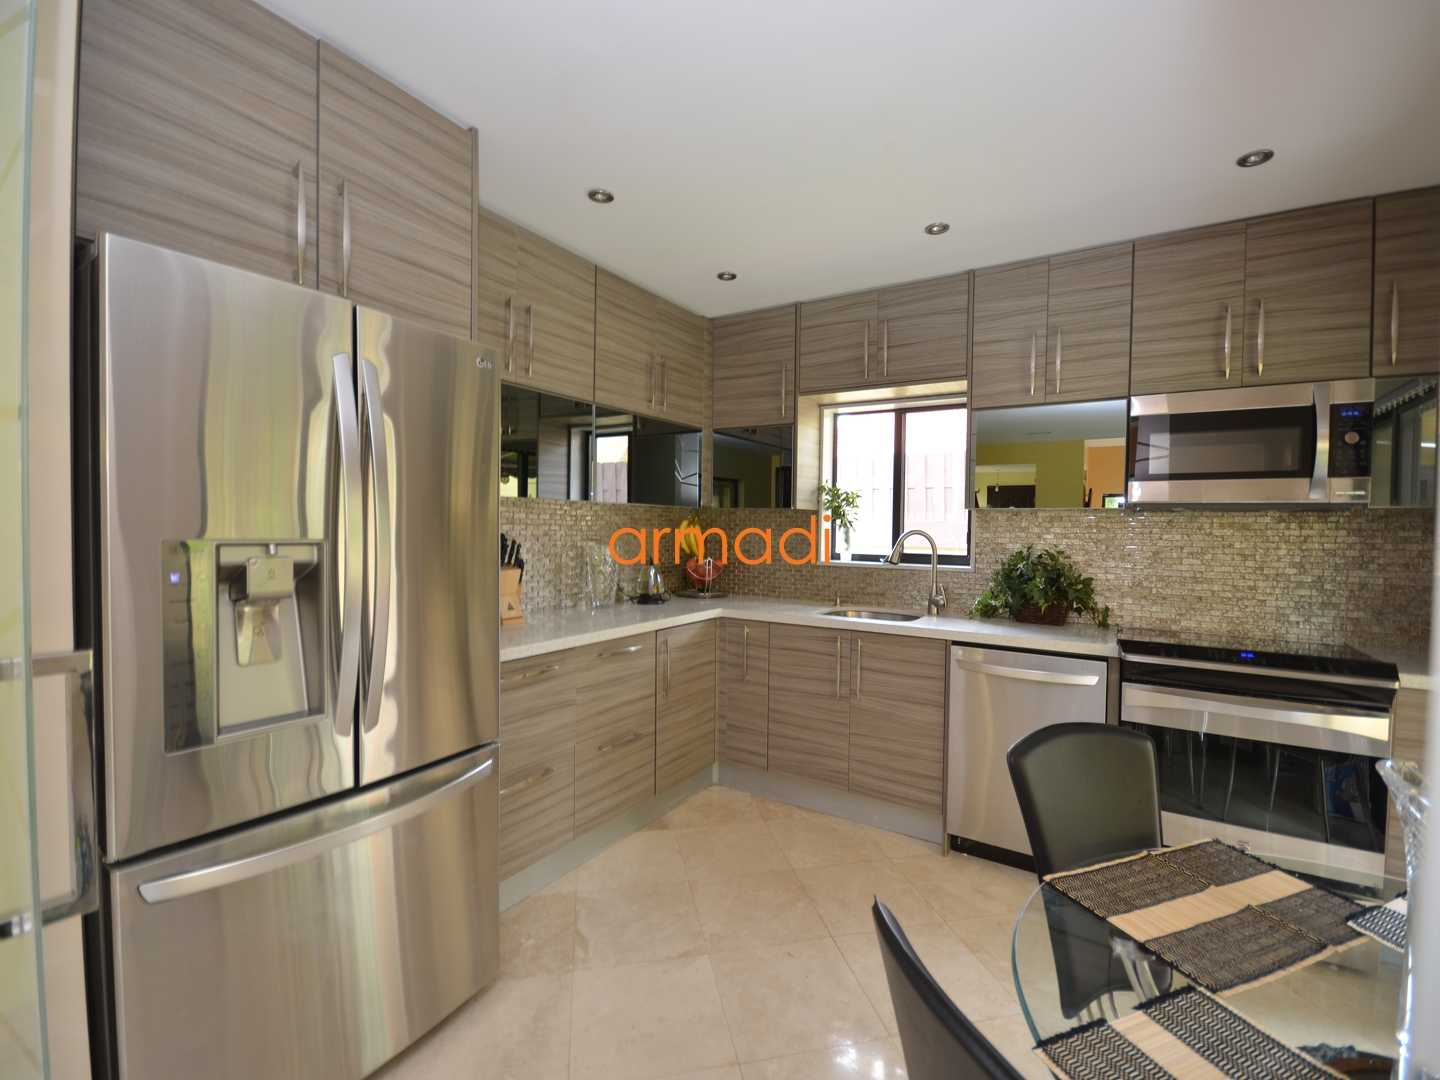 Cheap Kitchen Cabinets Miami Design Kitchens Photo Gallery Amazing Home Design